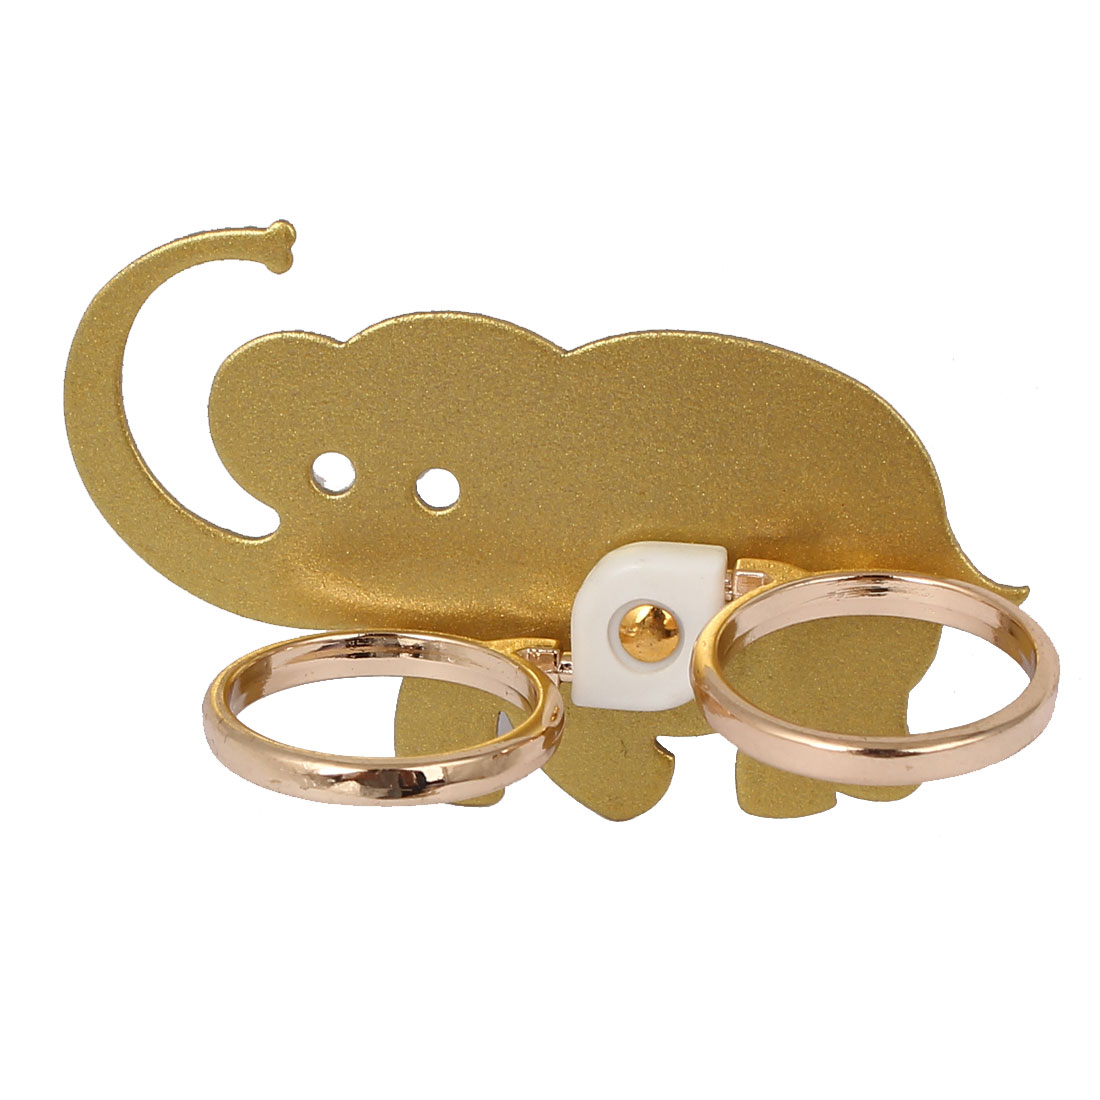 Mobile Phone Cellphone Elephant Pattern Adhesive Finger Ring Grip Stand Mount Gold Tone